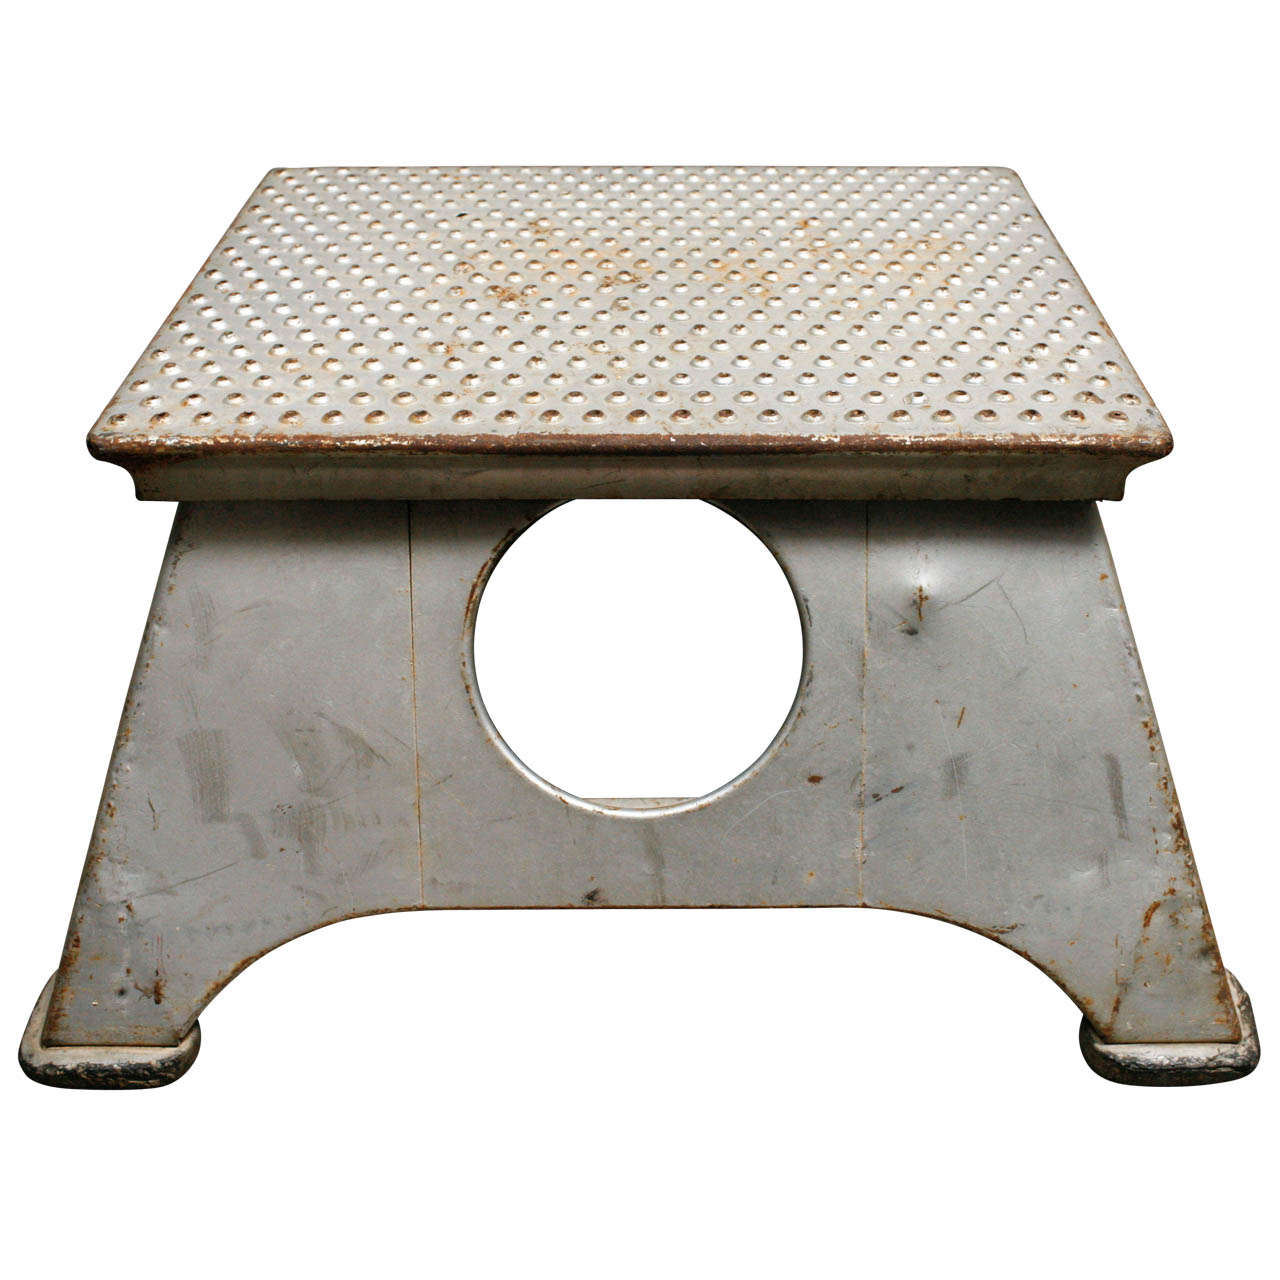 Pullman Passenger Train Step Stool 1  sc 1 st  1stDibs : train step stool - islam-shia.org